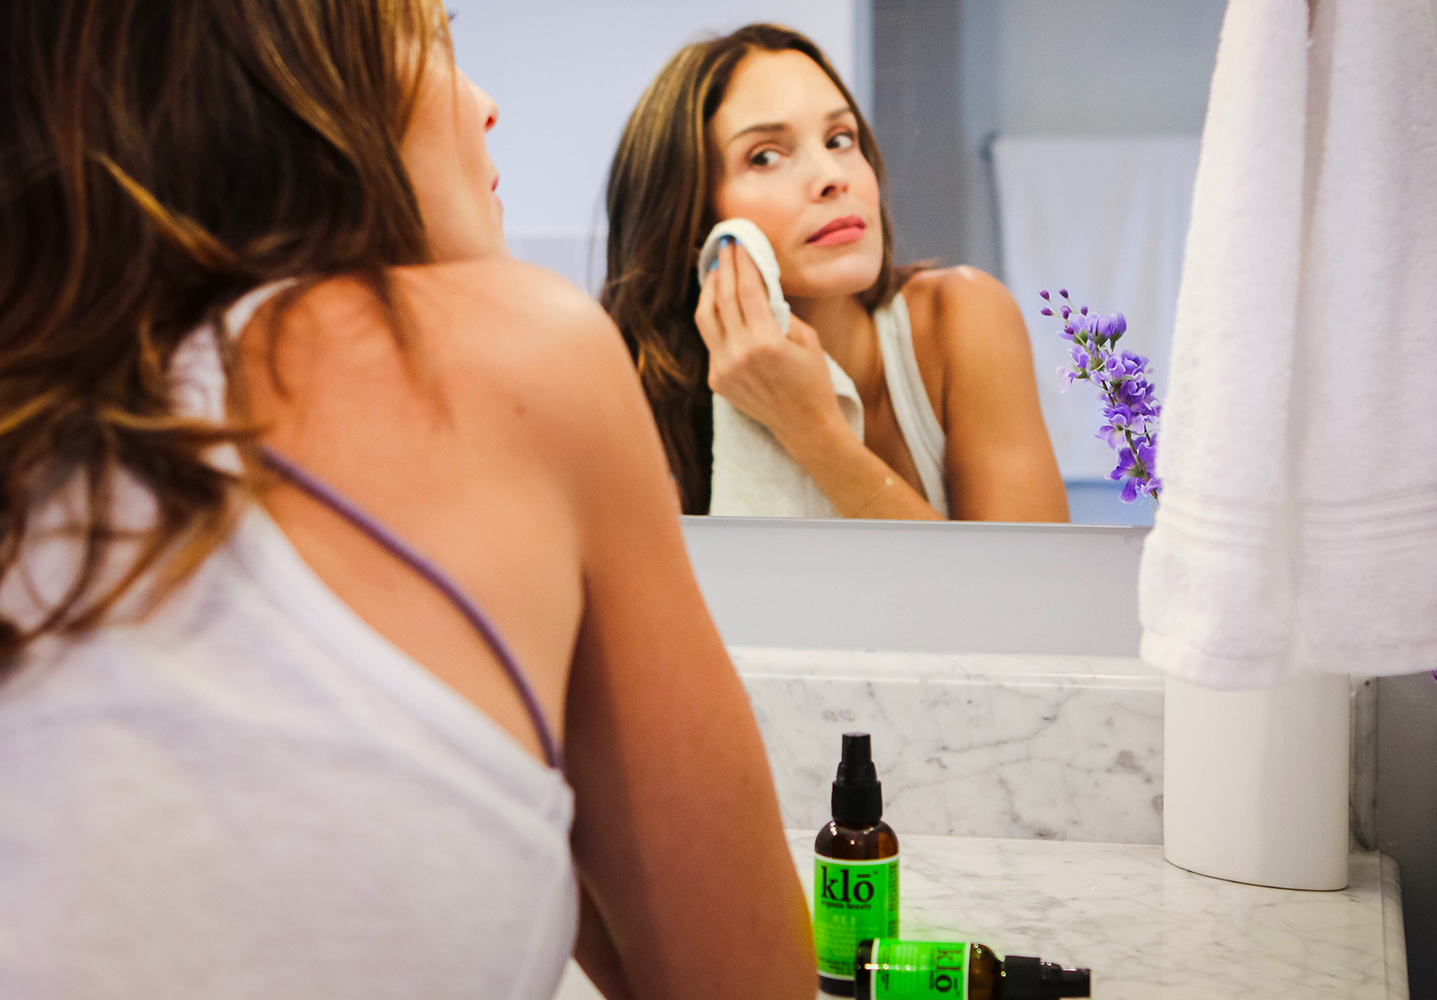 Woman uses Klo Organic Beauty for oily acne-prone skin